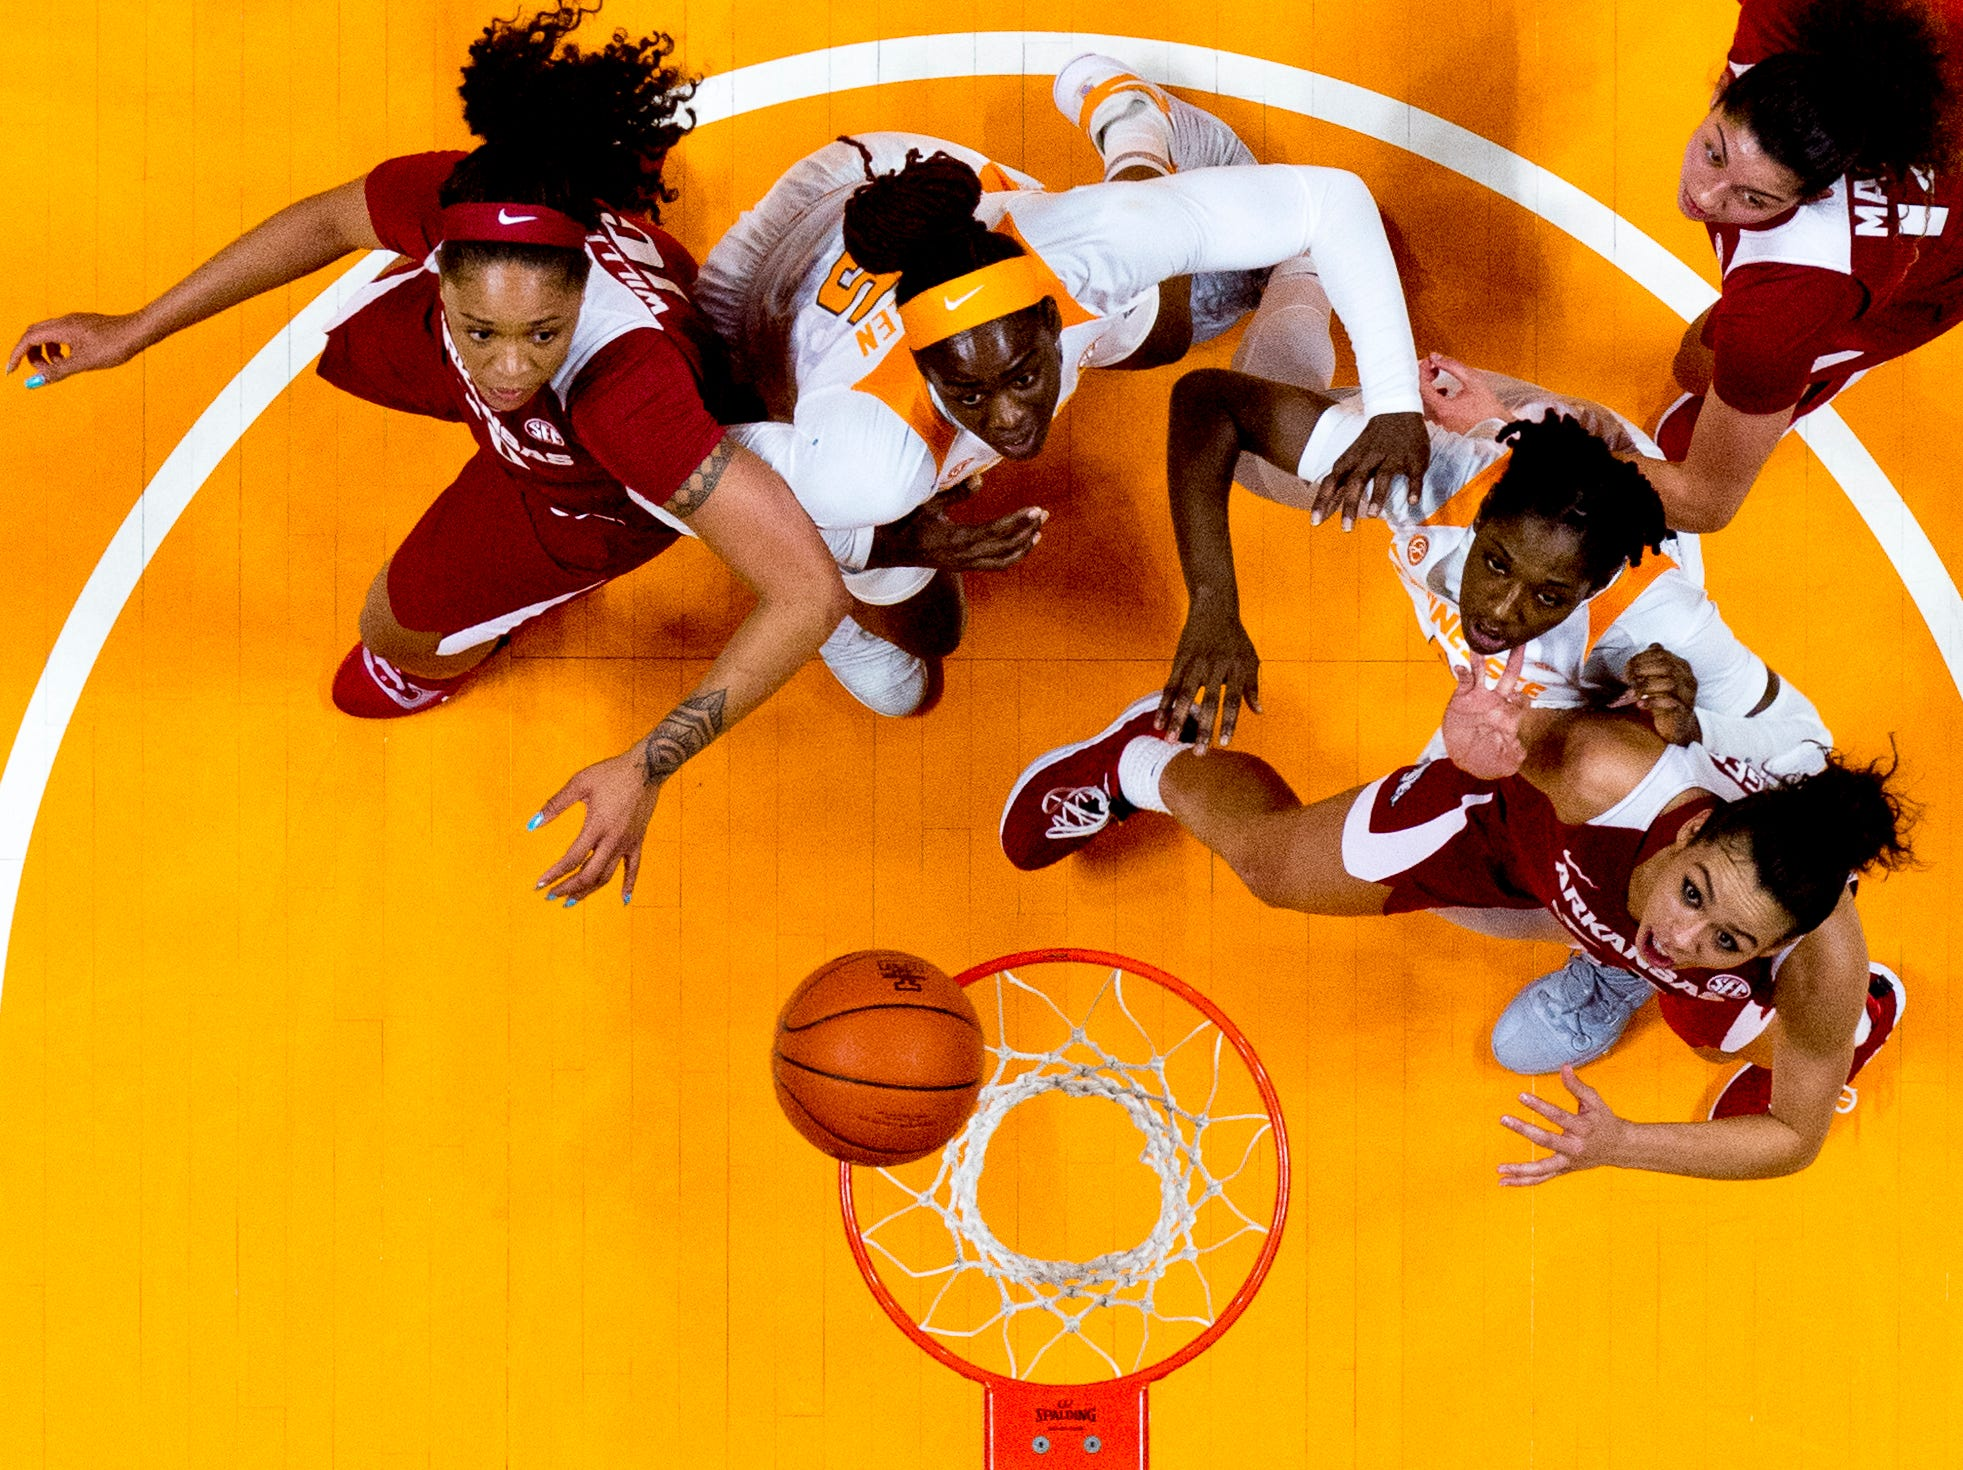 Players eye the ball above the rim during a game between Tennessee and Arkansas at Thompson-Boling Arena in Knoxville, Tennessee on Monday, January 21, 2019.